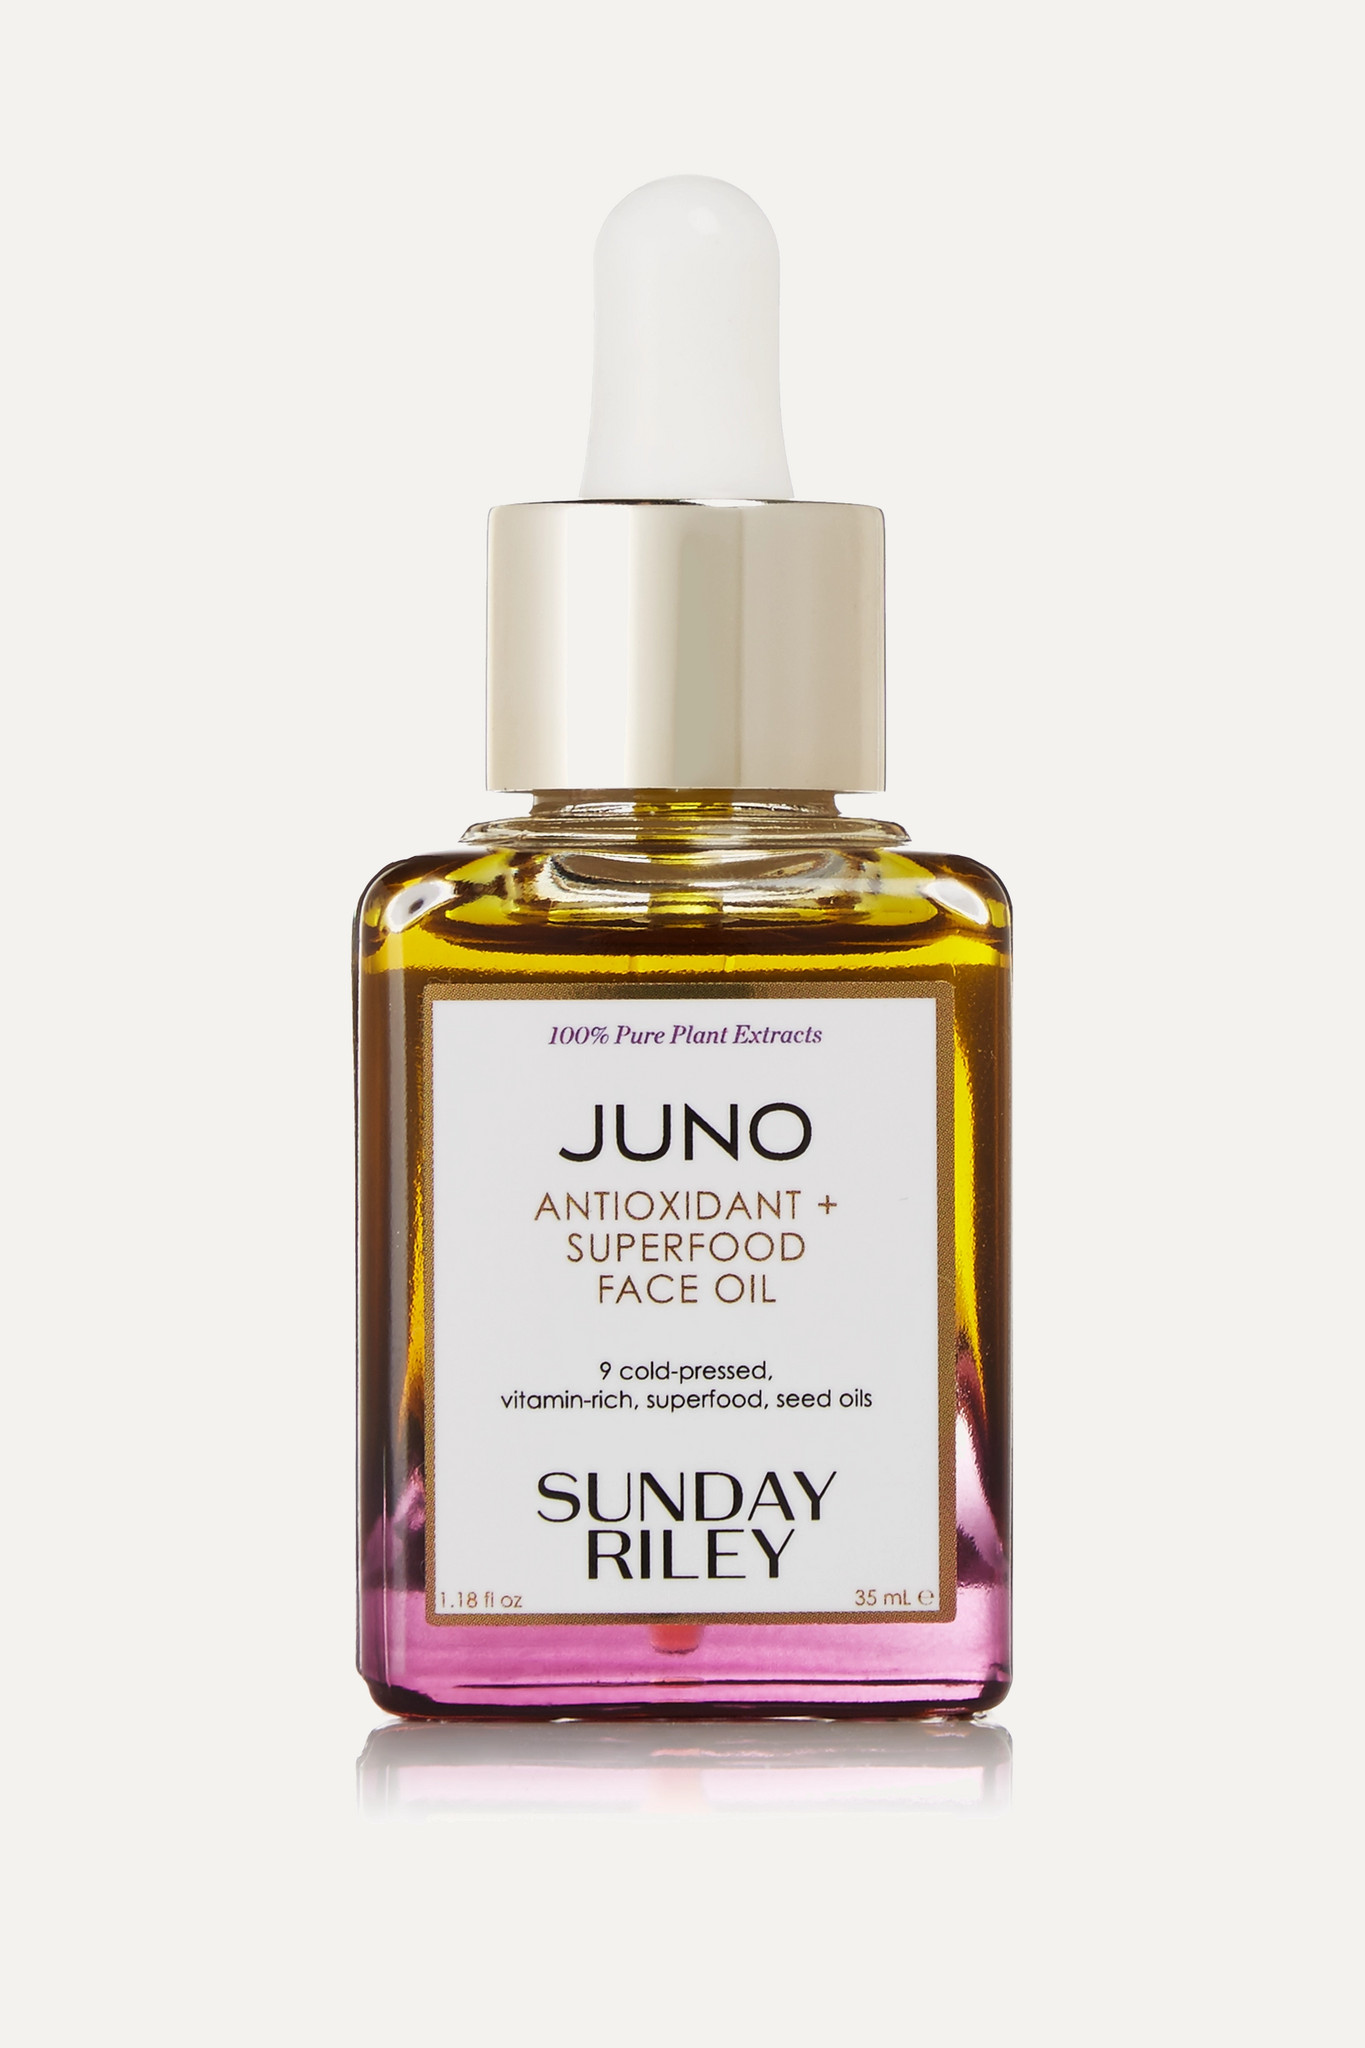 SUNDAY RILEY - Juno Juno Antioxidant + Superfood Face Oil, 35ml - one size